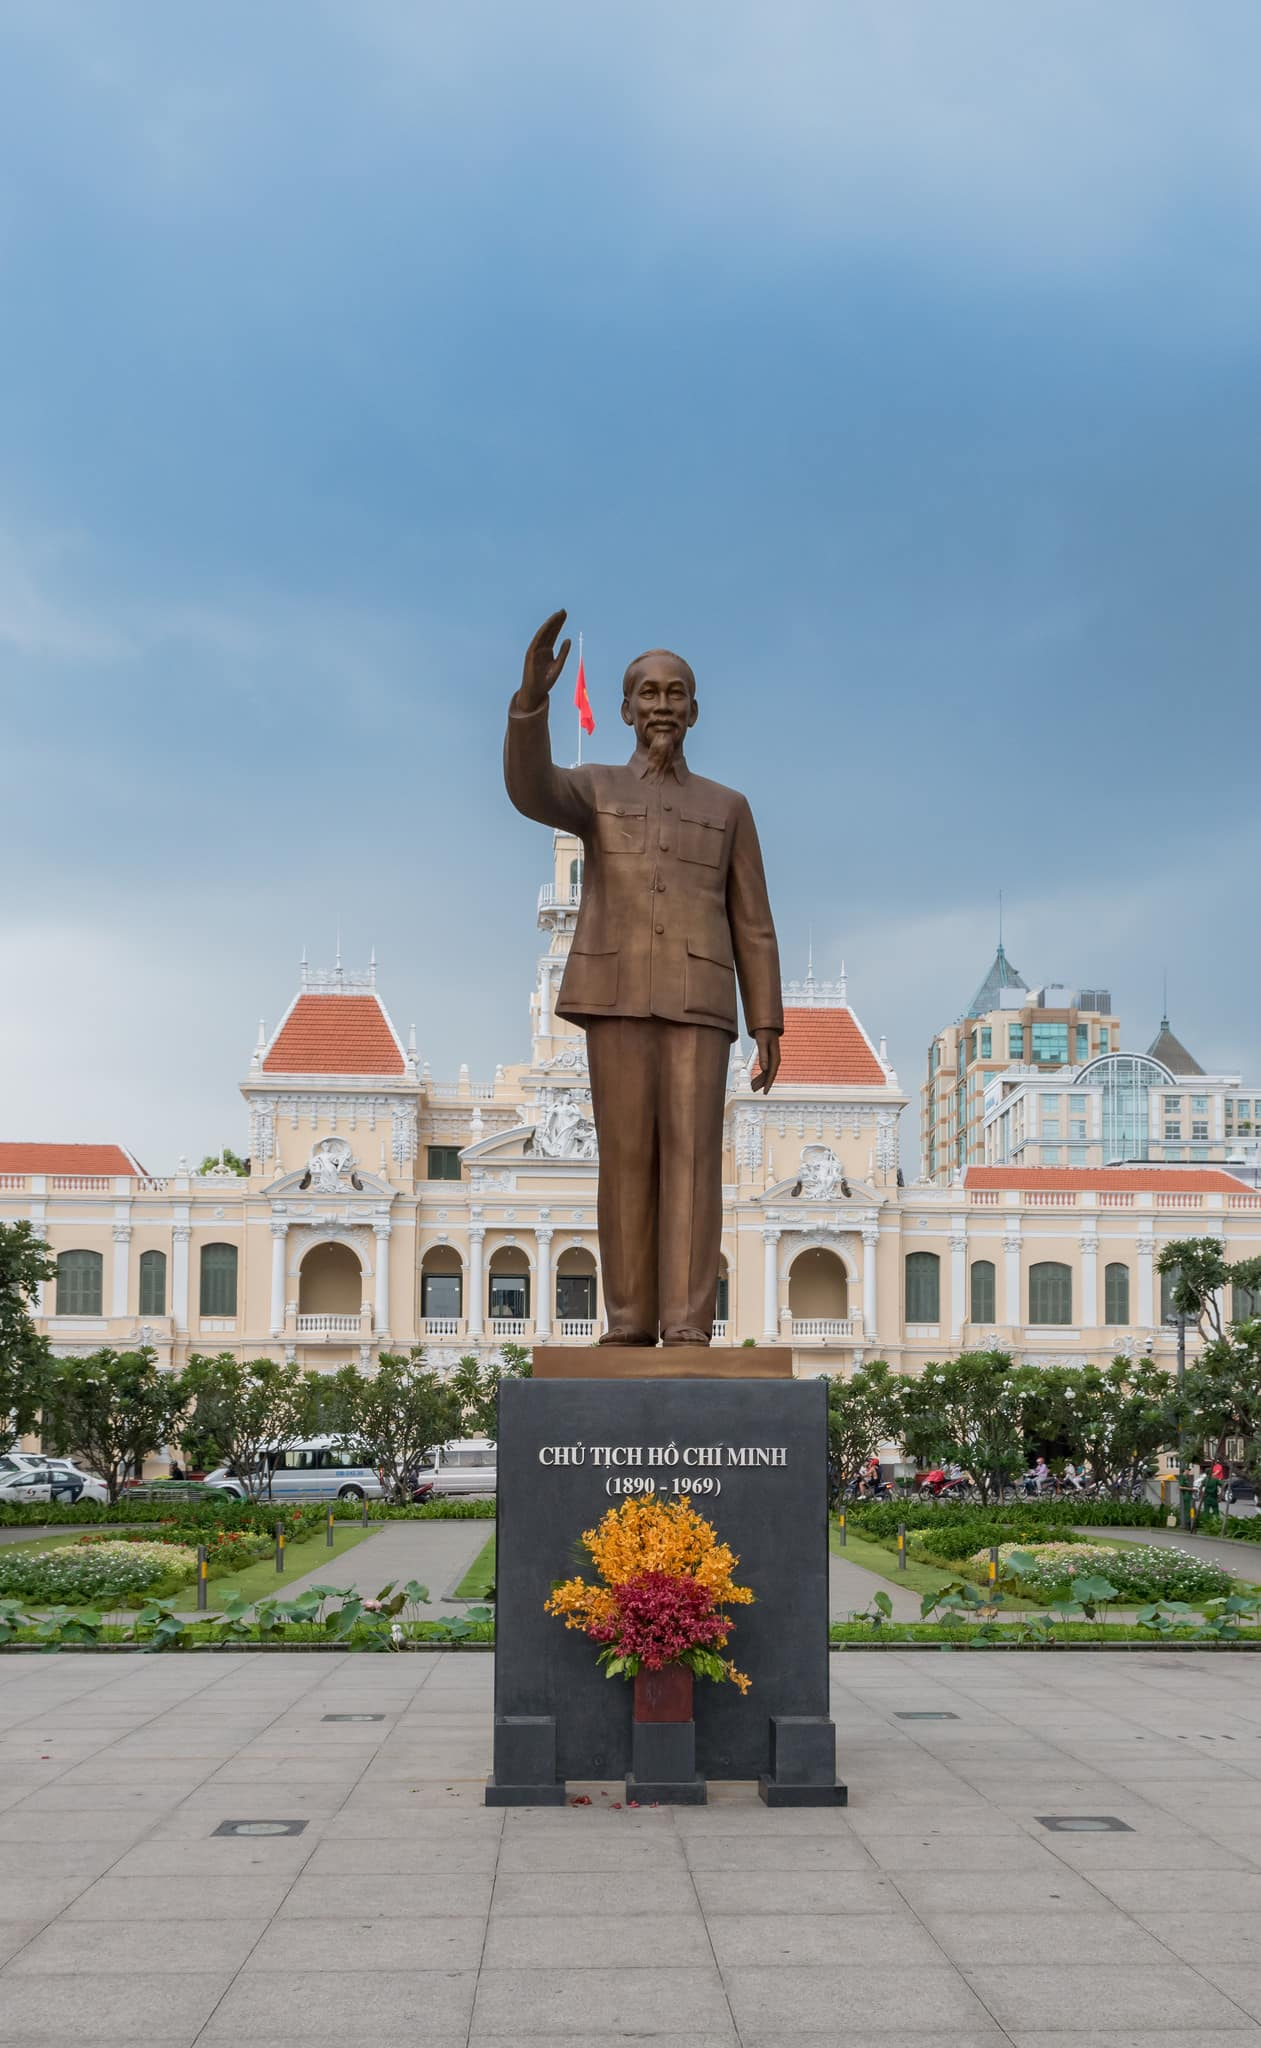 Seattle to Ho Chi Minh City Vietnam $508 RT Airfares on 5* Asiana Airlines (Travel January - April 2021)